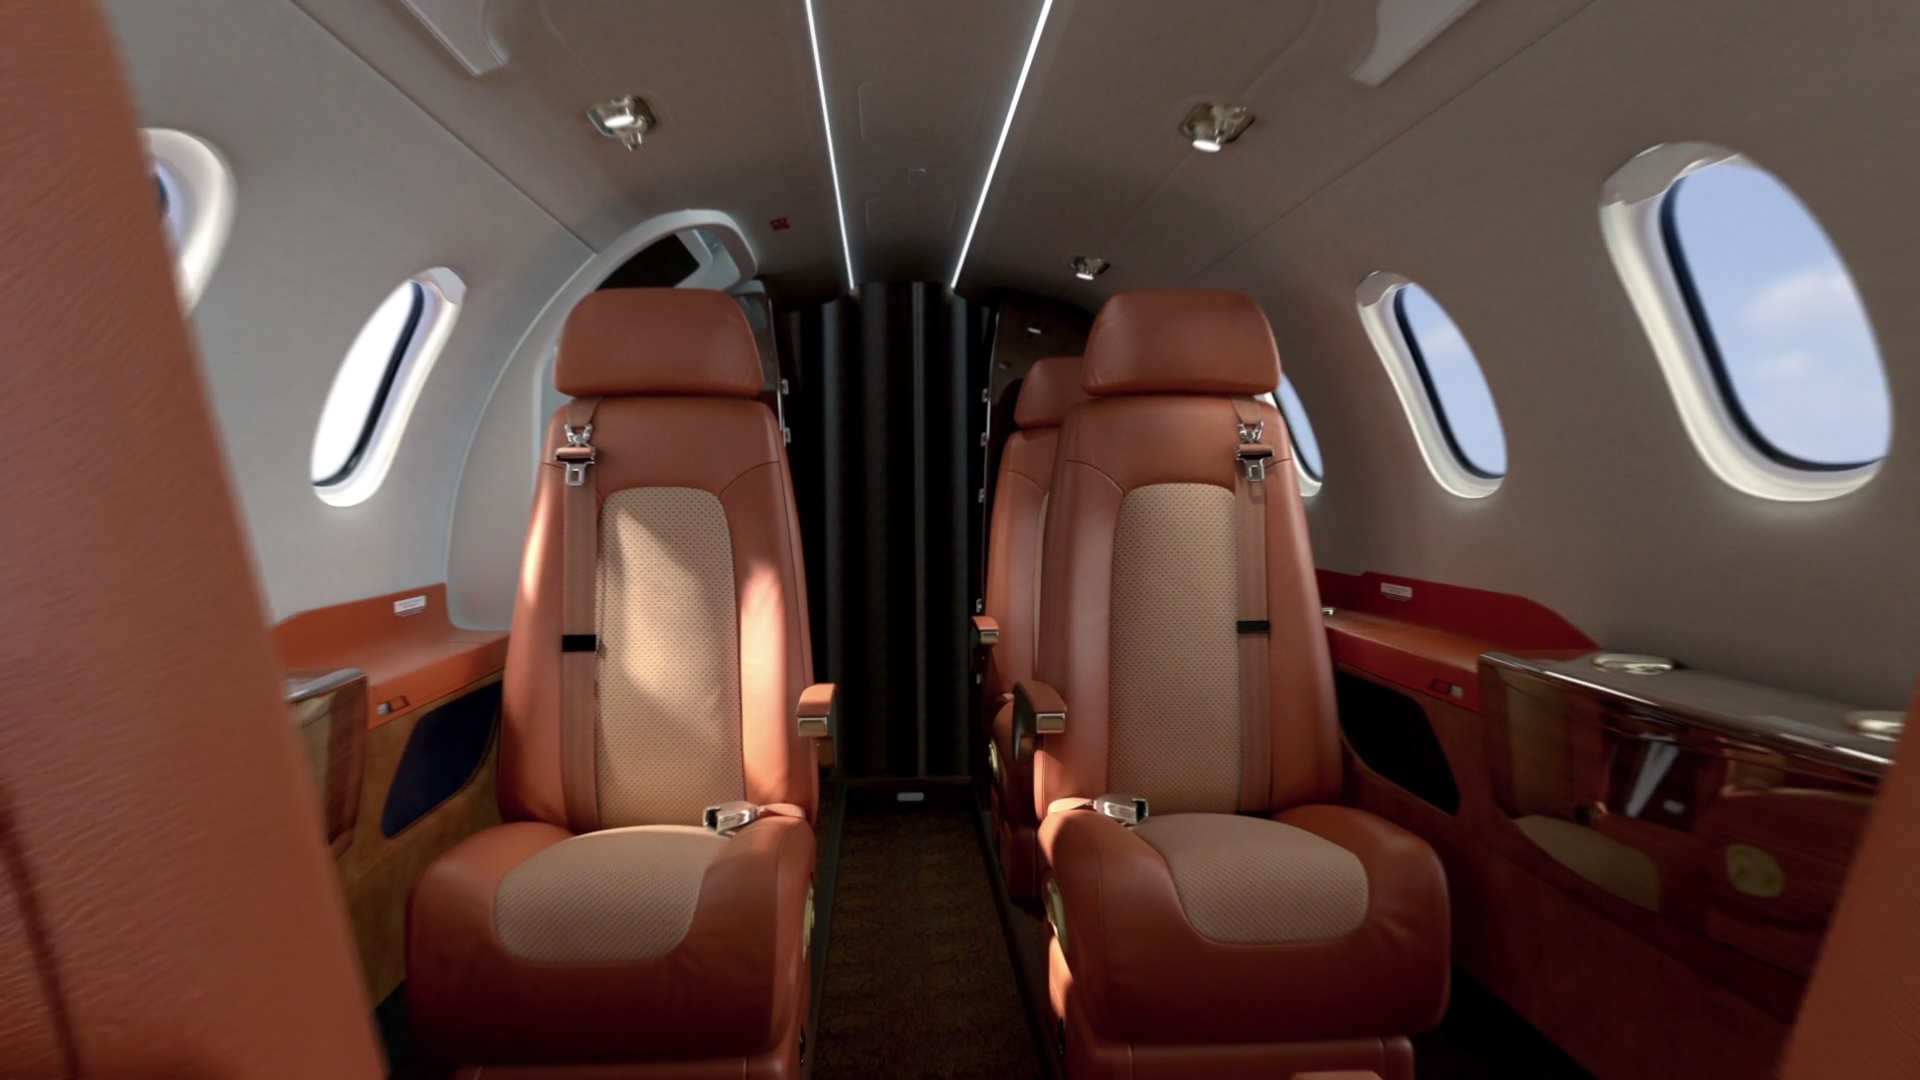 FlexJet Website